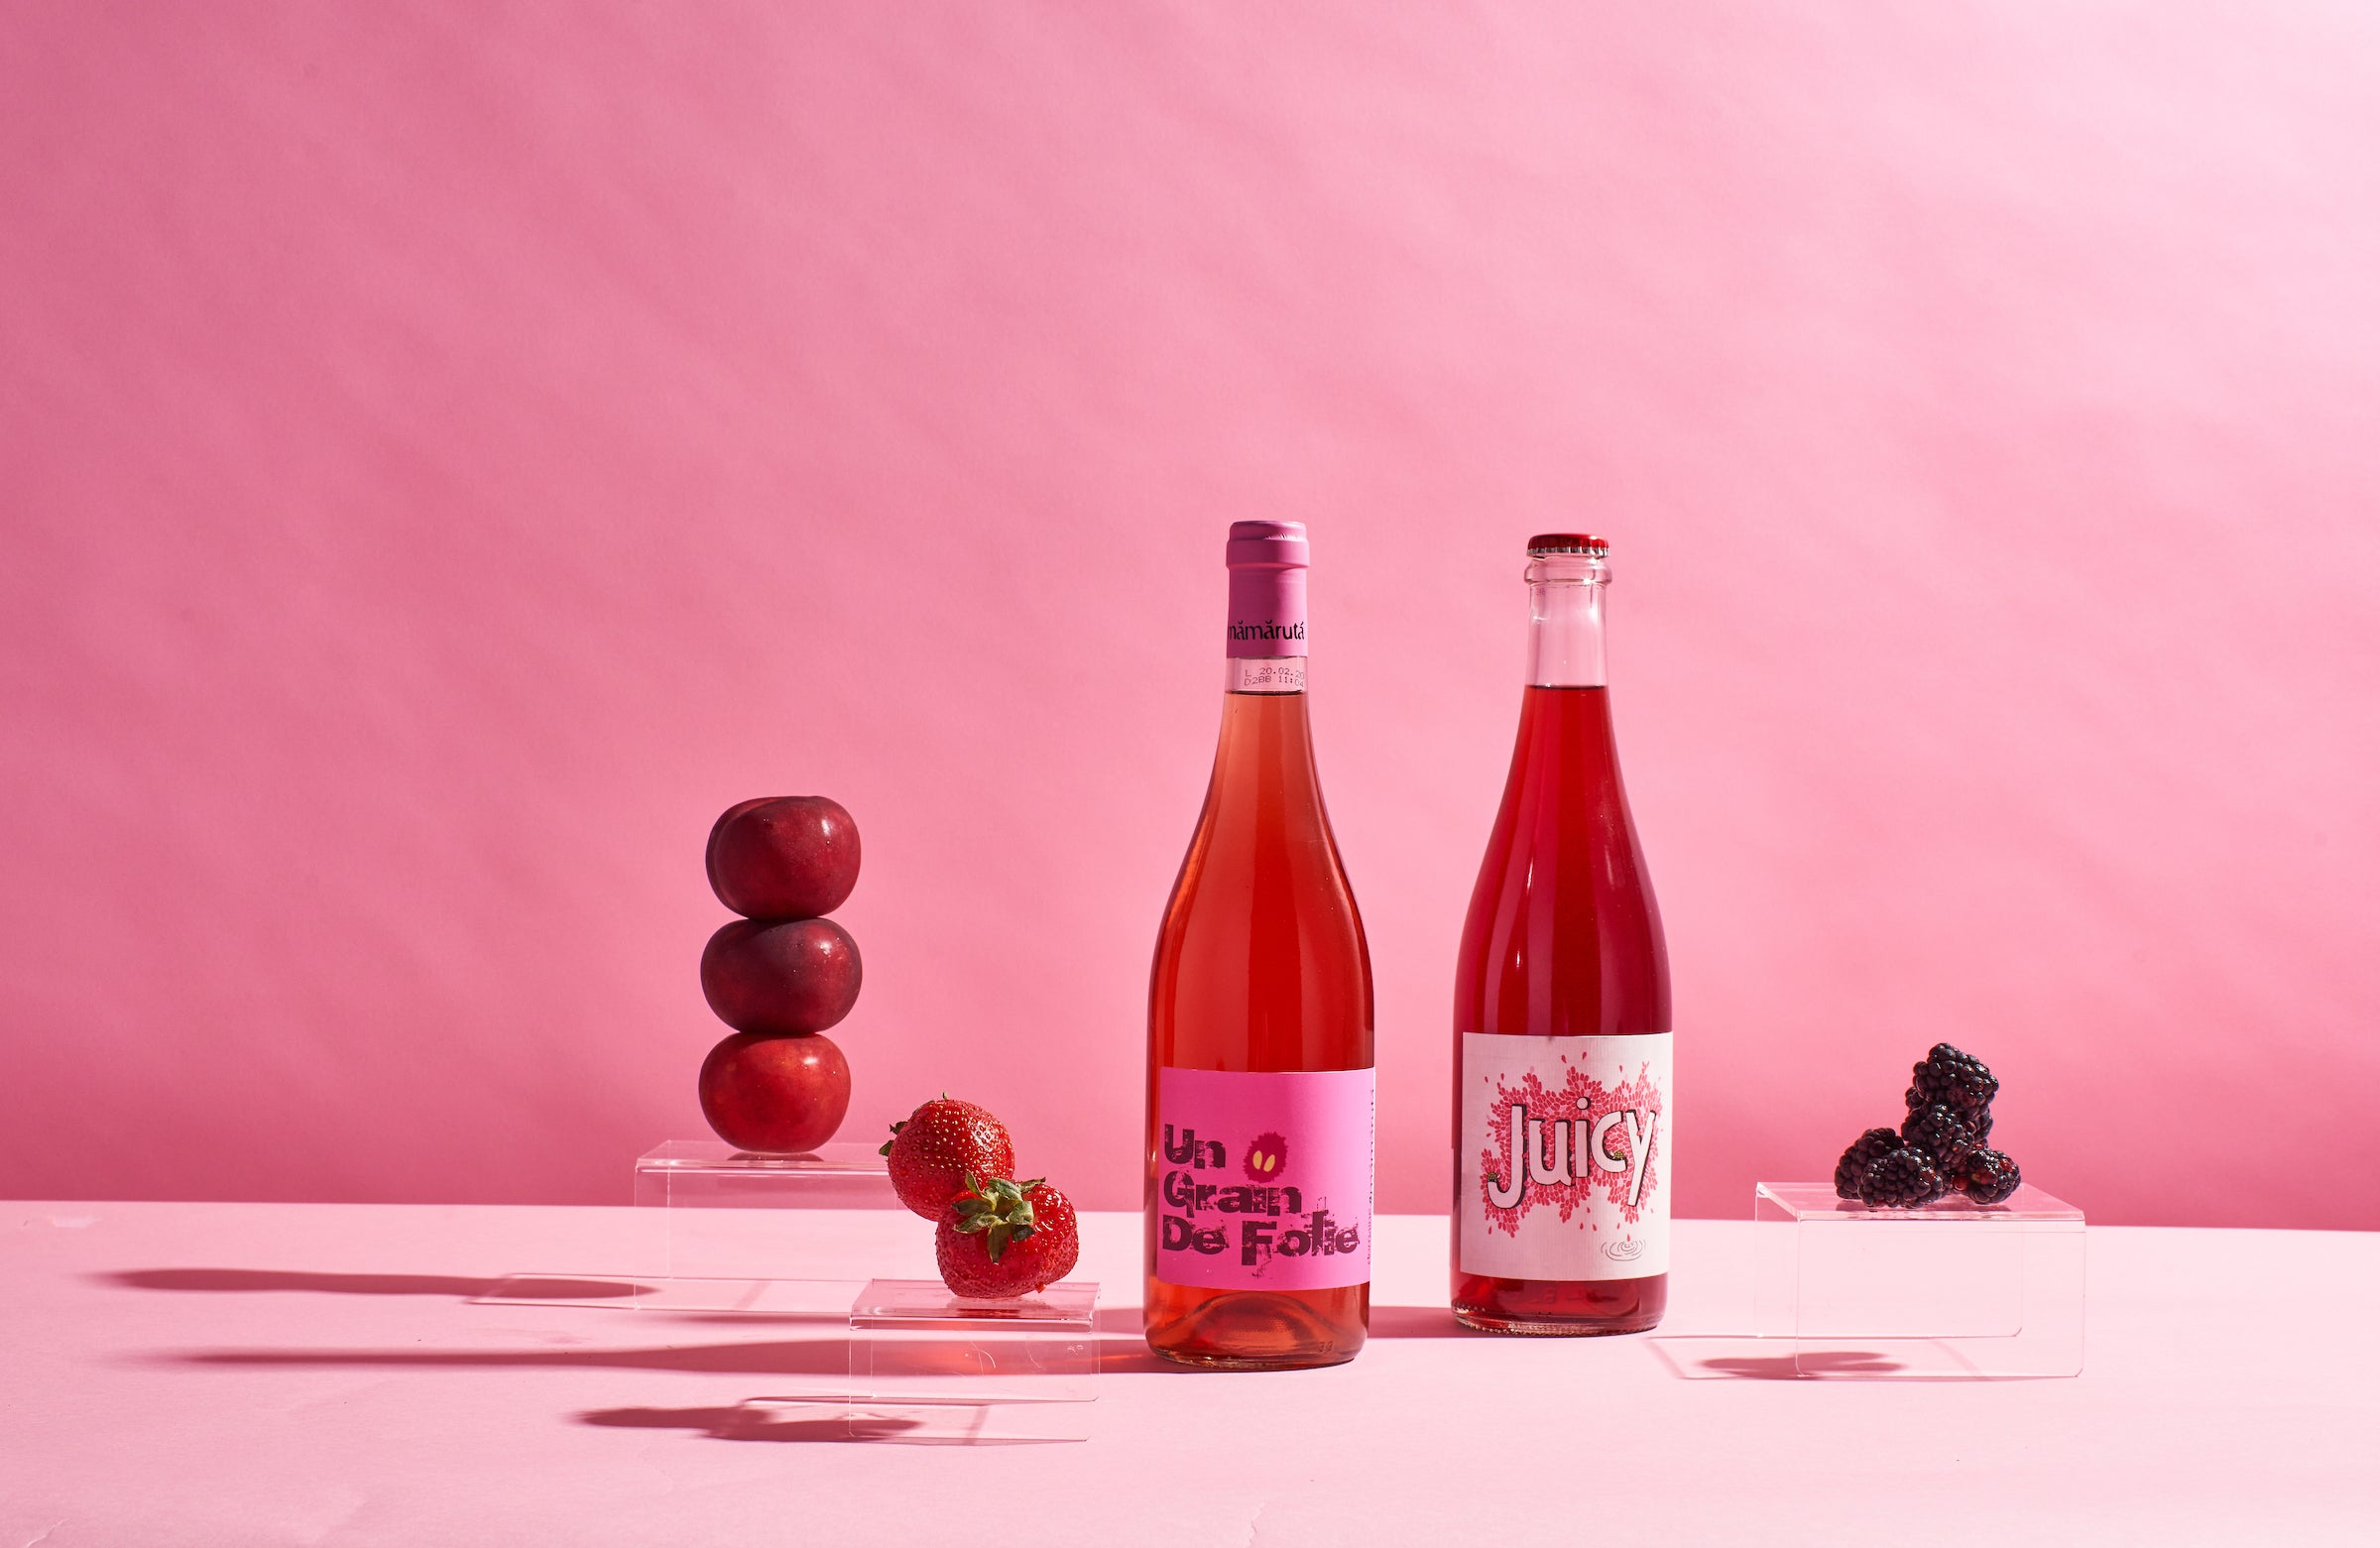 rose natural wines from France and Spain